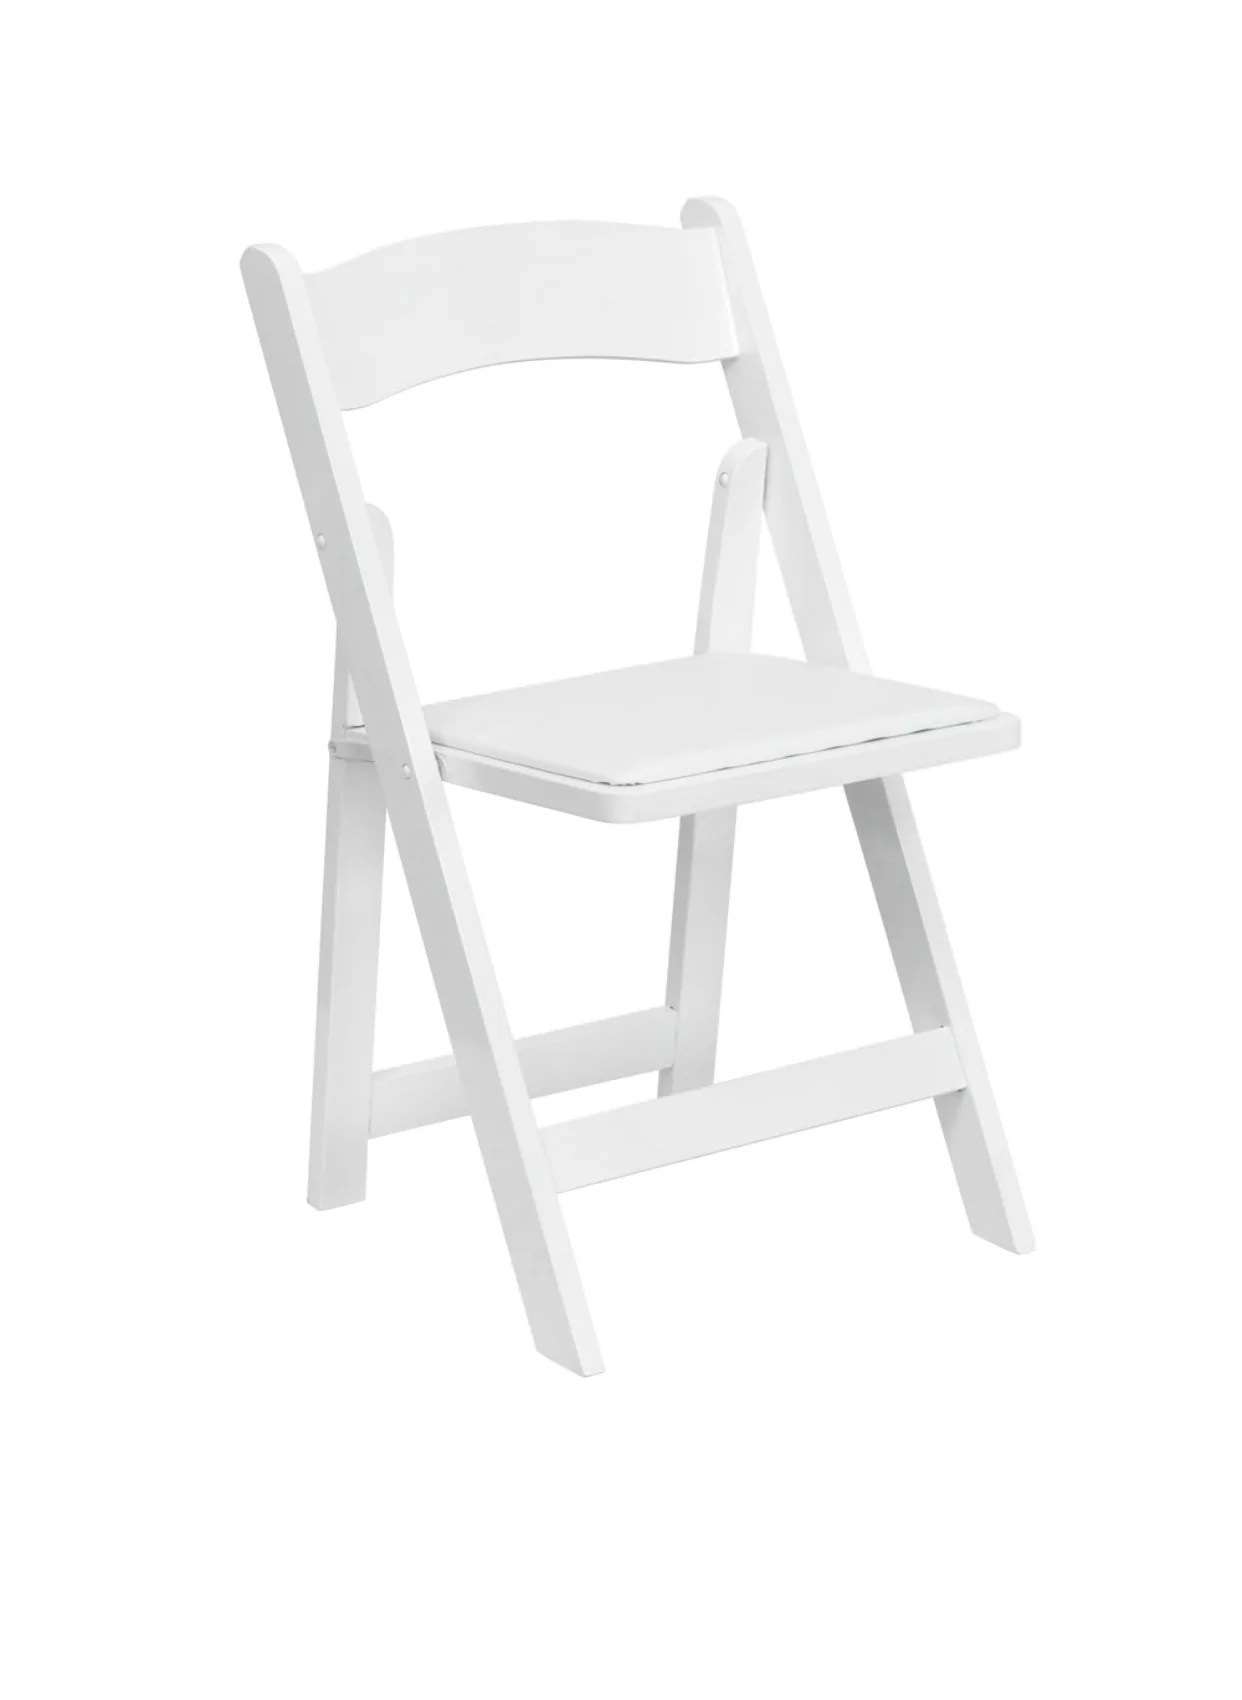 Resin Chairs White Resin Folding Chairs